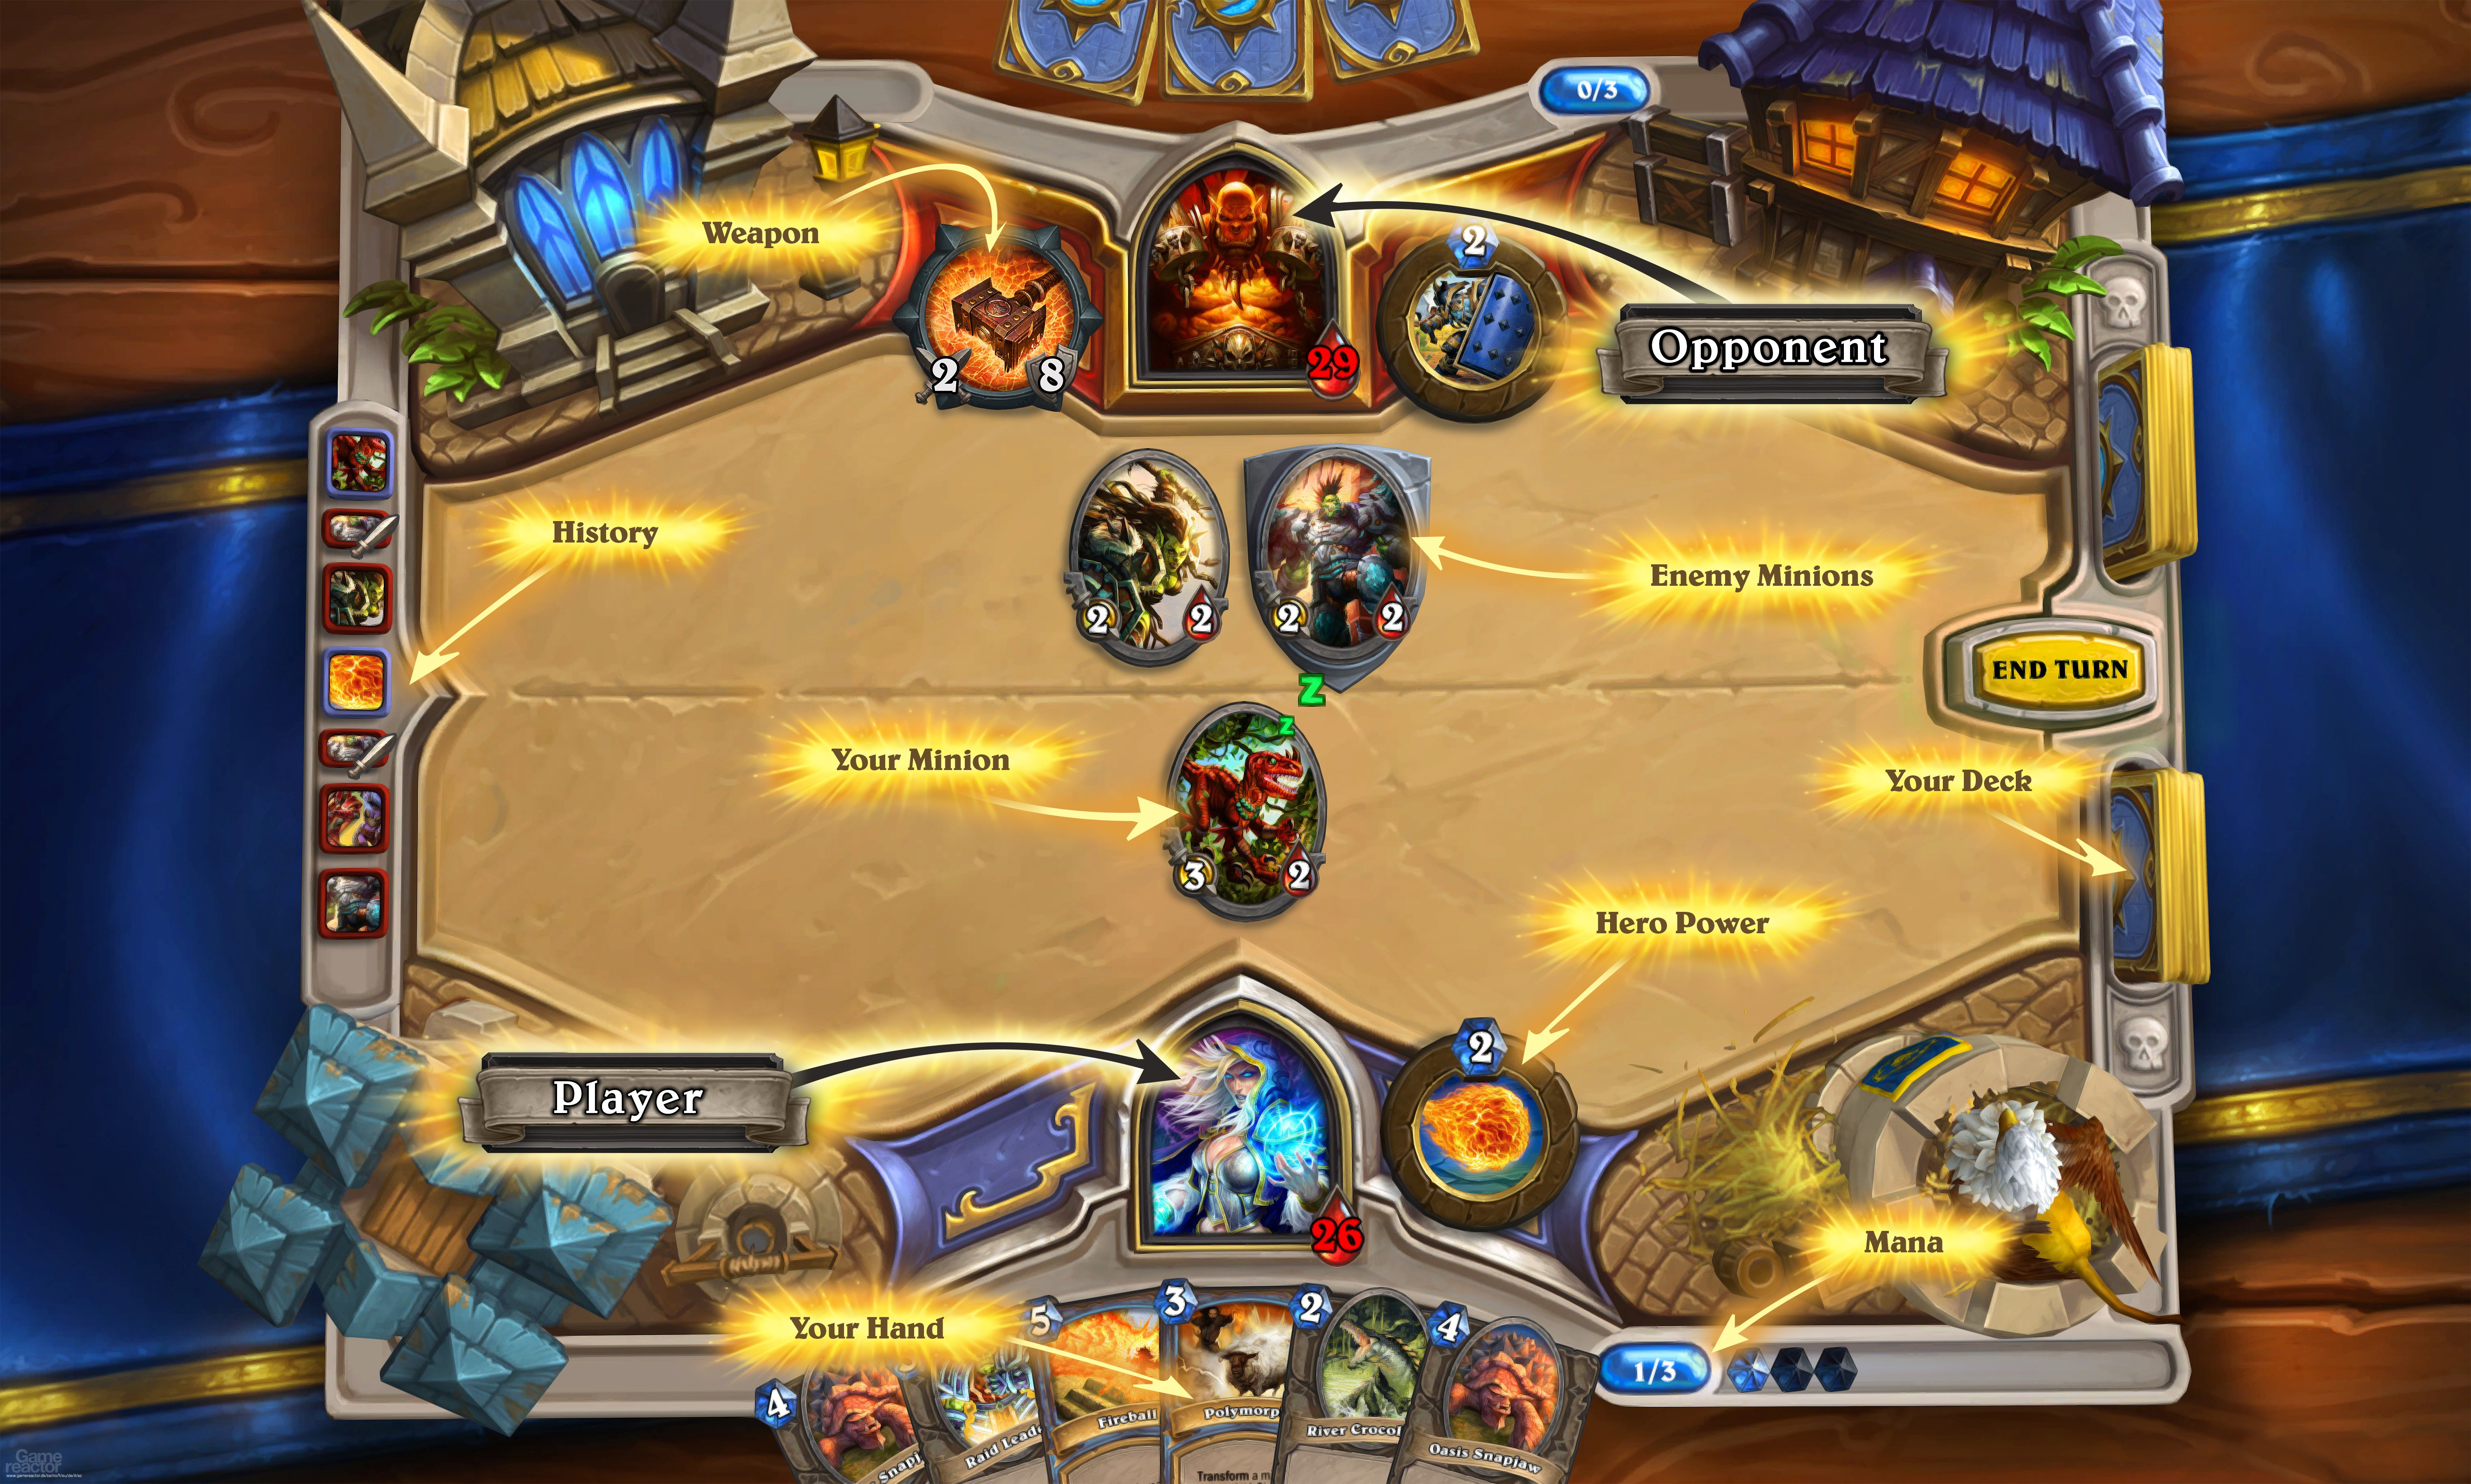 pictures of blizzard reveals hearthstone heroes of warcraft 1 9